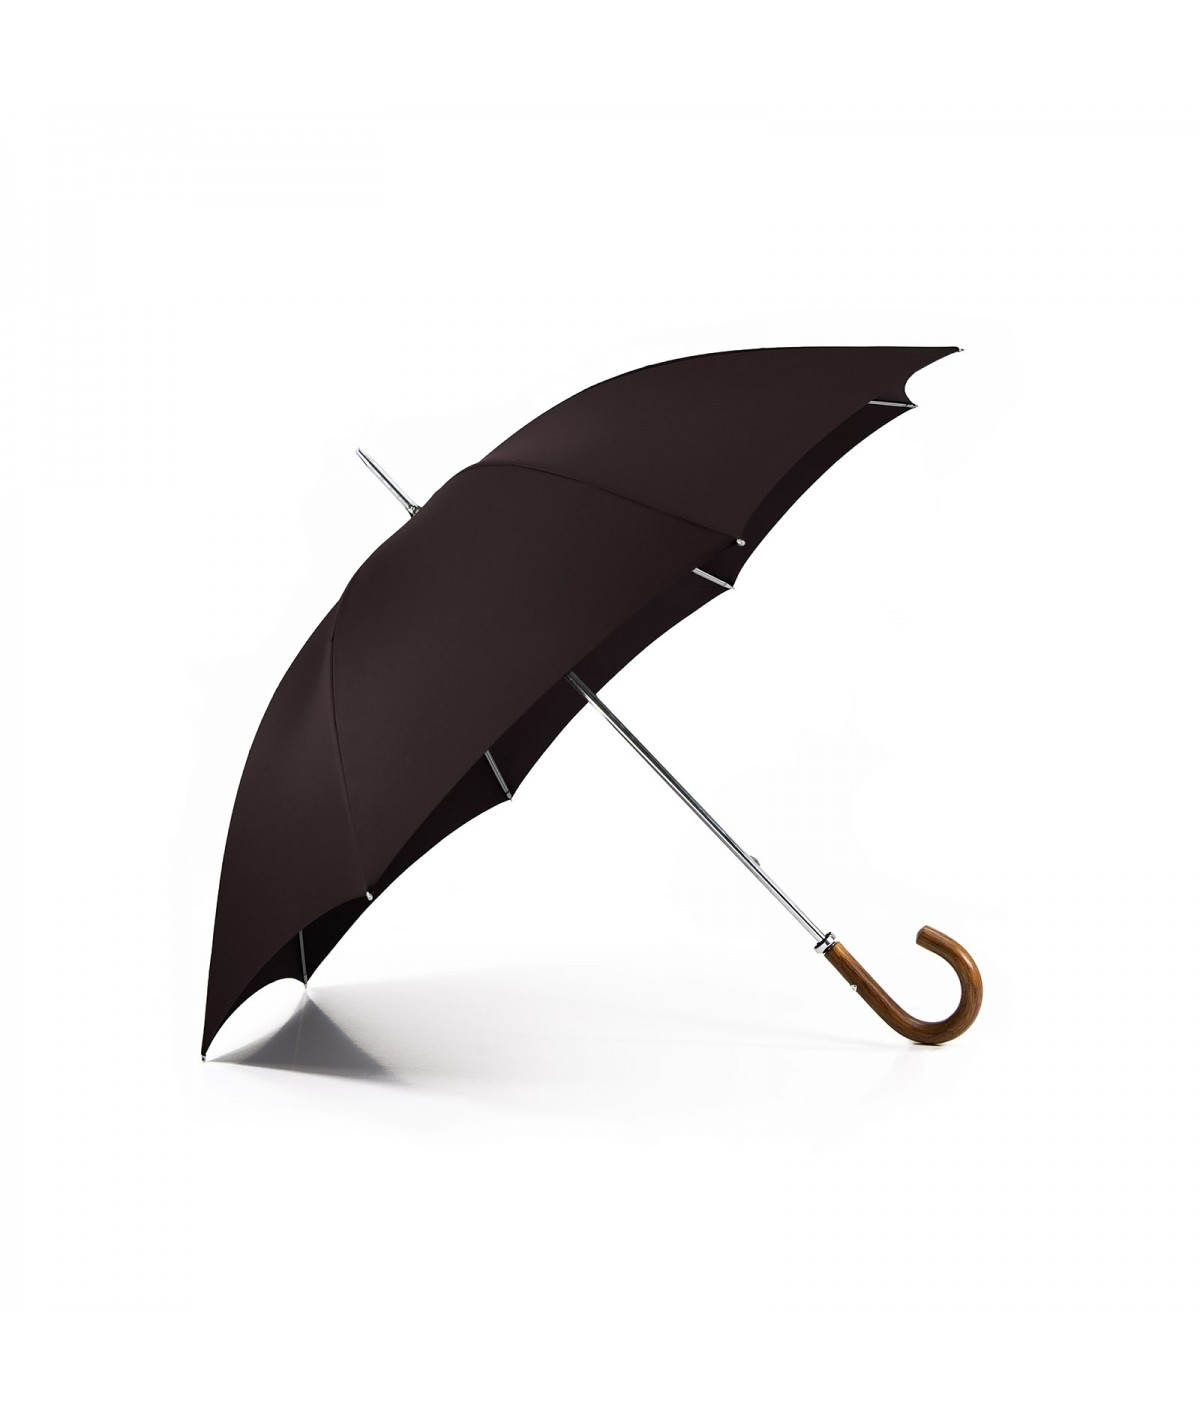 "→ Parapluie ""Le Golf"" - Chocolat - Fabrication Traditionnelle artisanale"